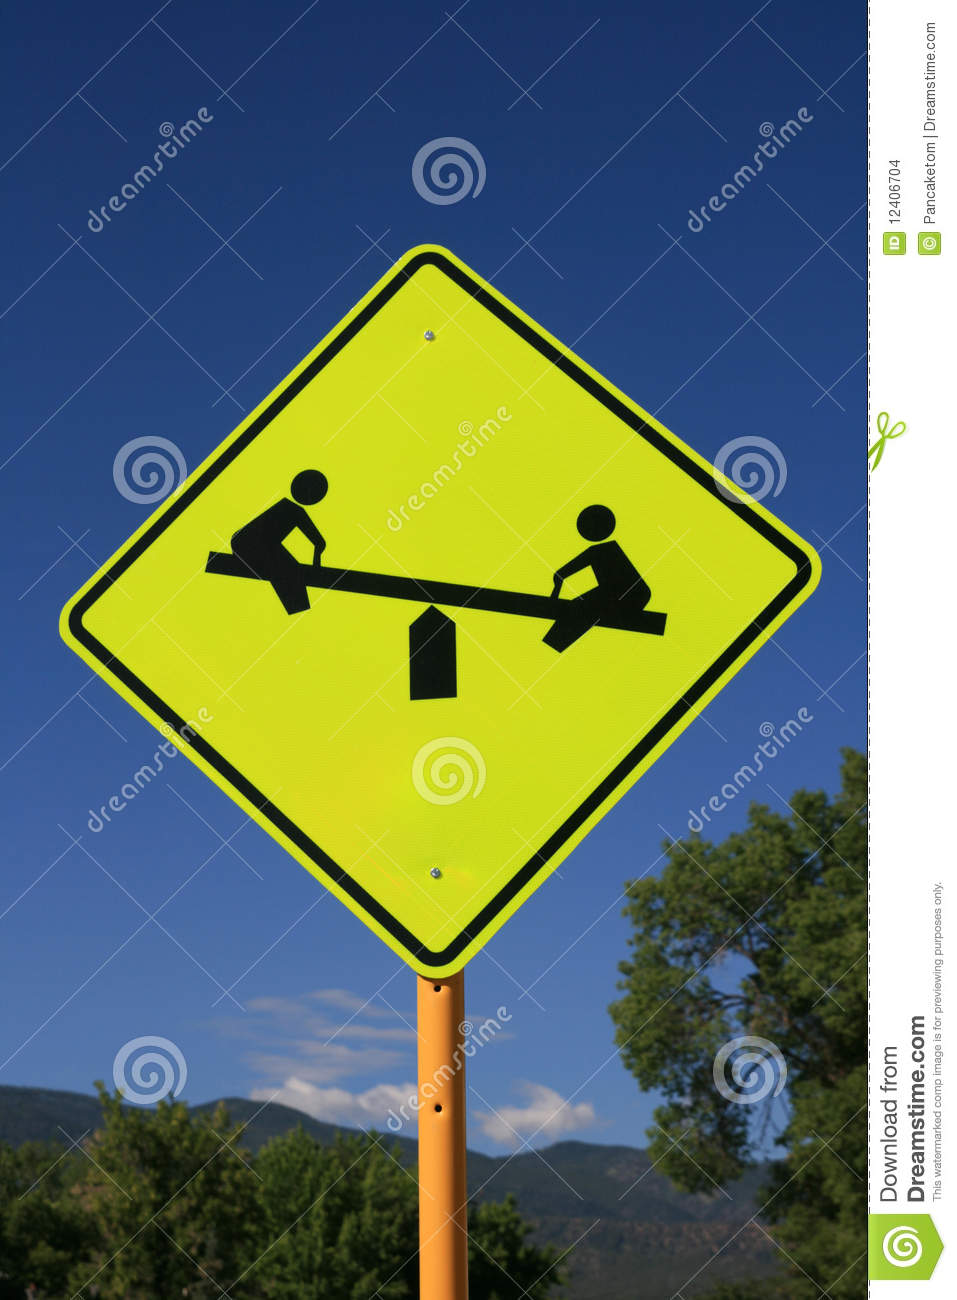 Playground Road Sign Stock Images - Image: 12406704